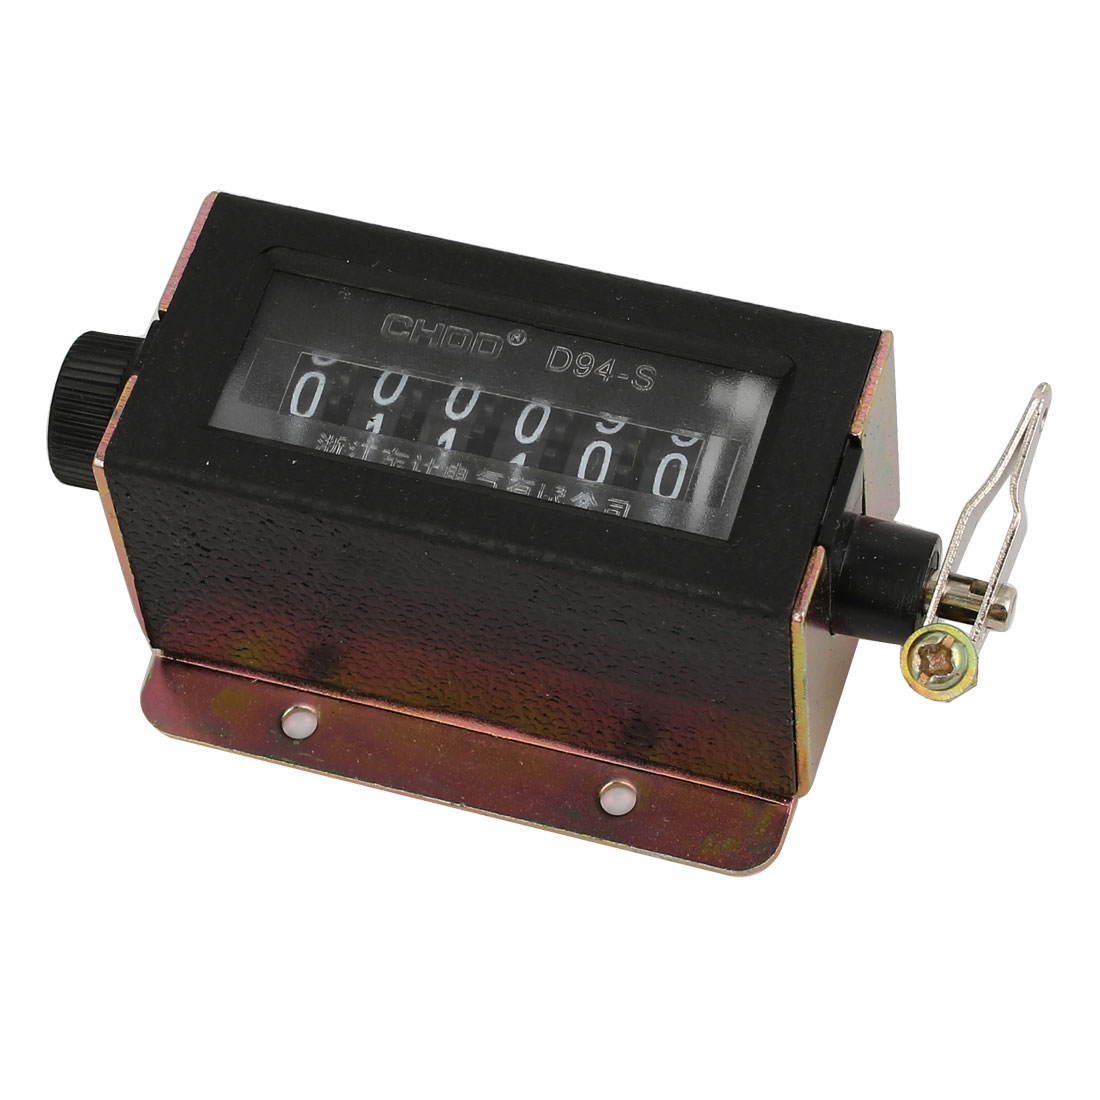 Black Shell D94-S 6 Digits Resettable Spring Mechanical Pull Counter for Puncher